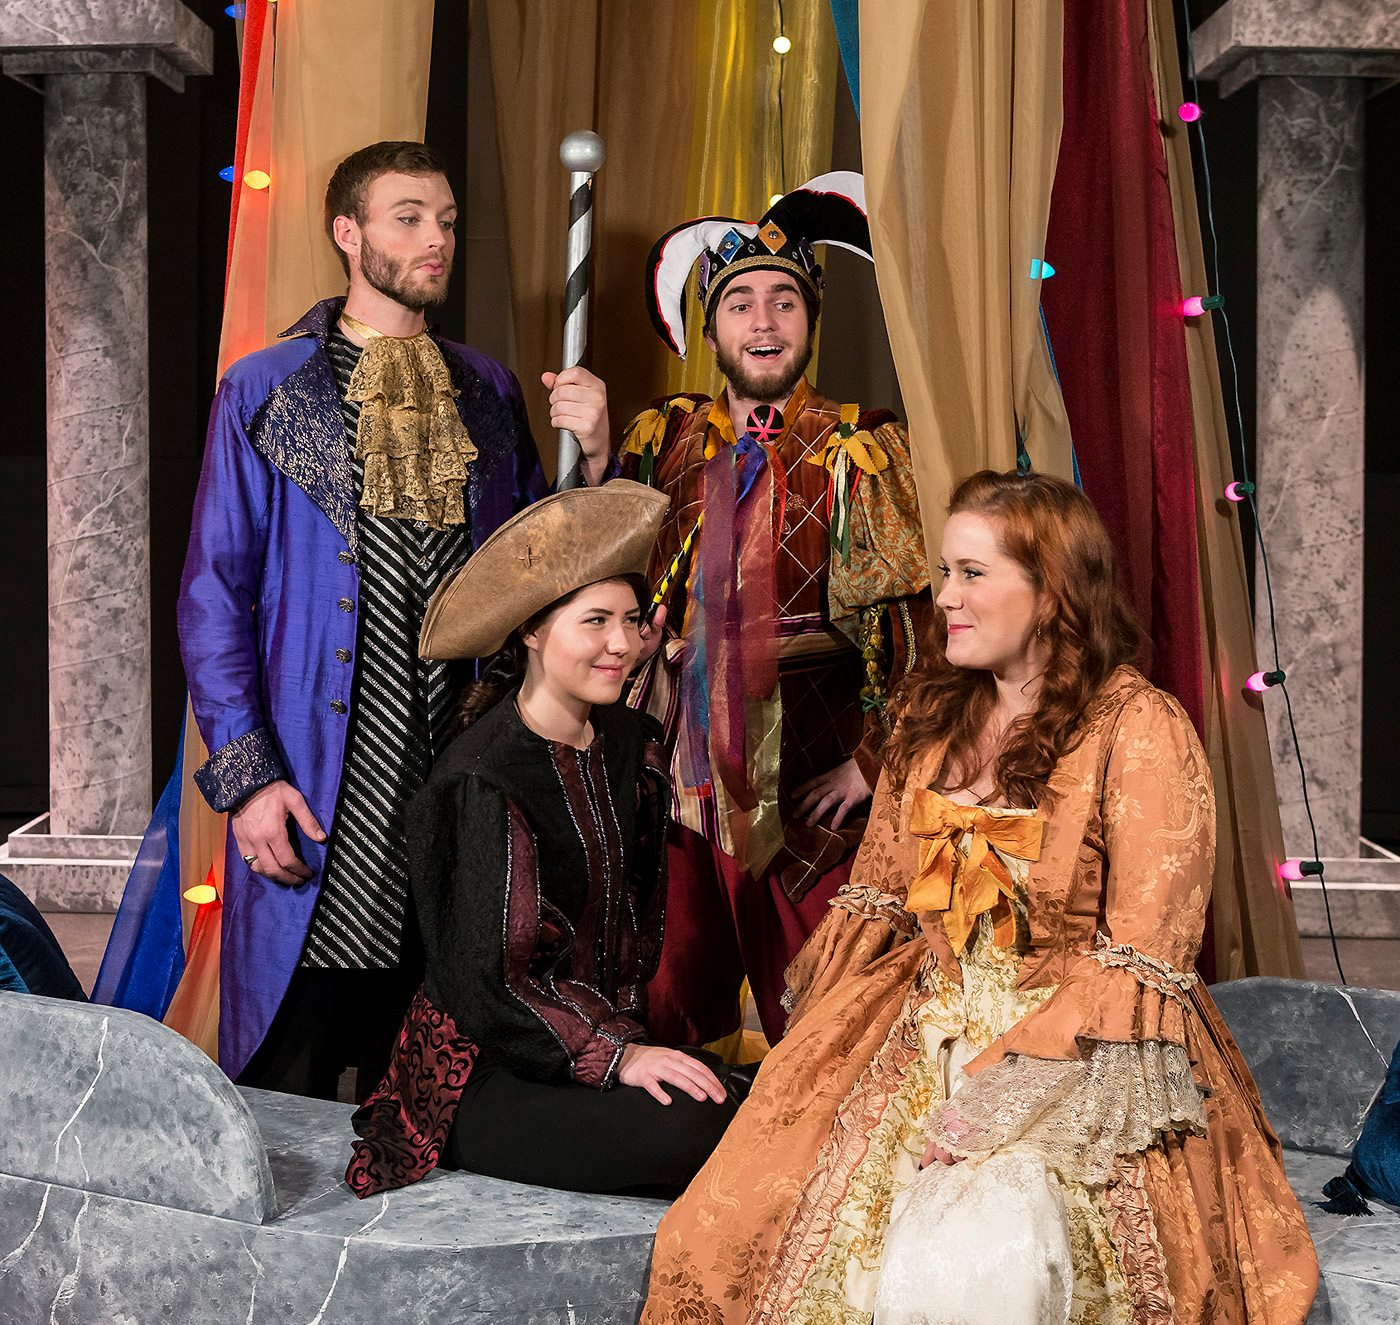 The cast of UCSB's production of Twelfth Night